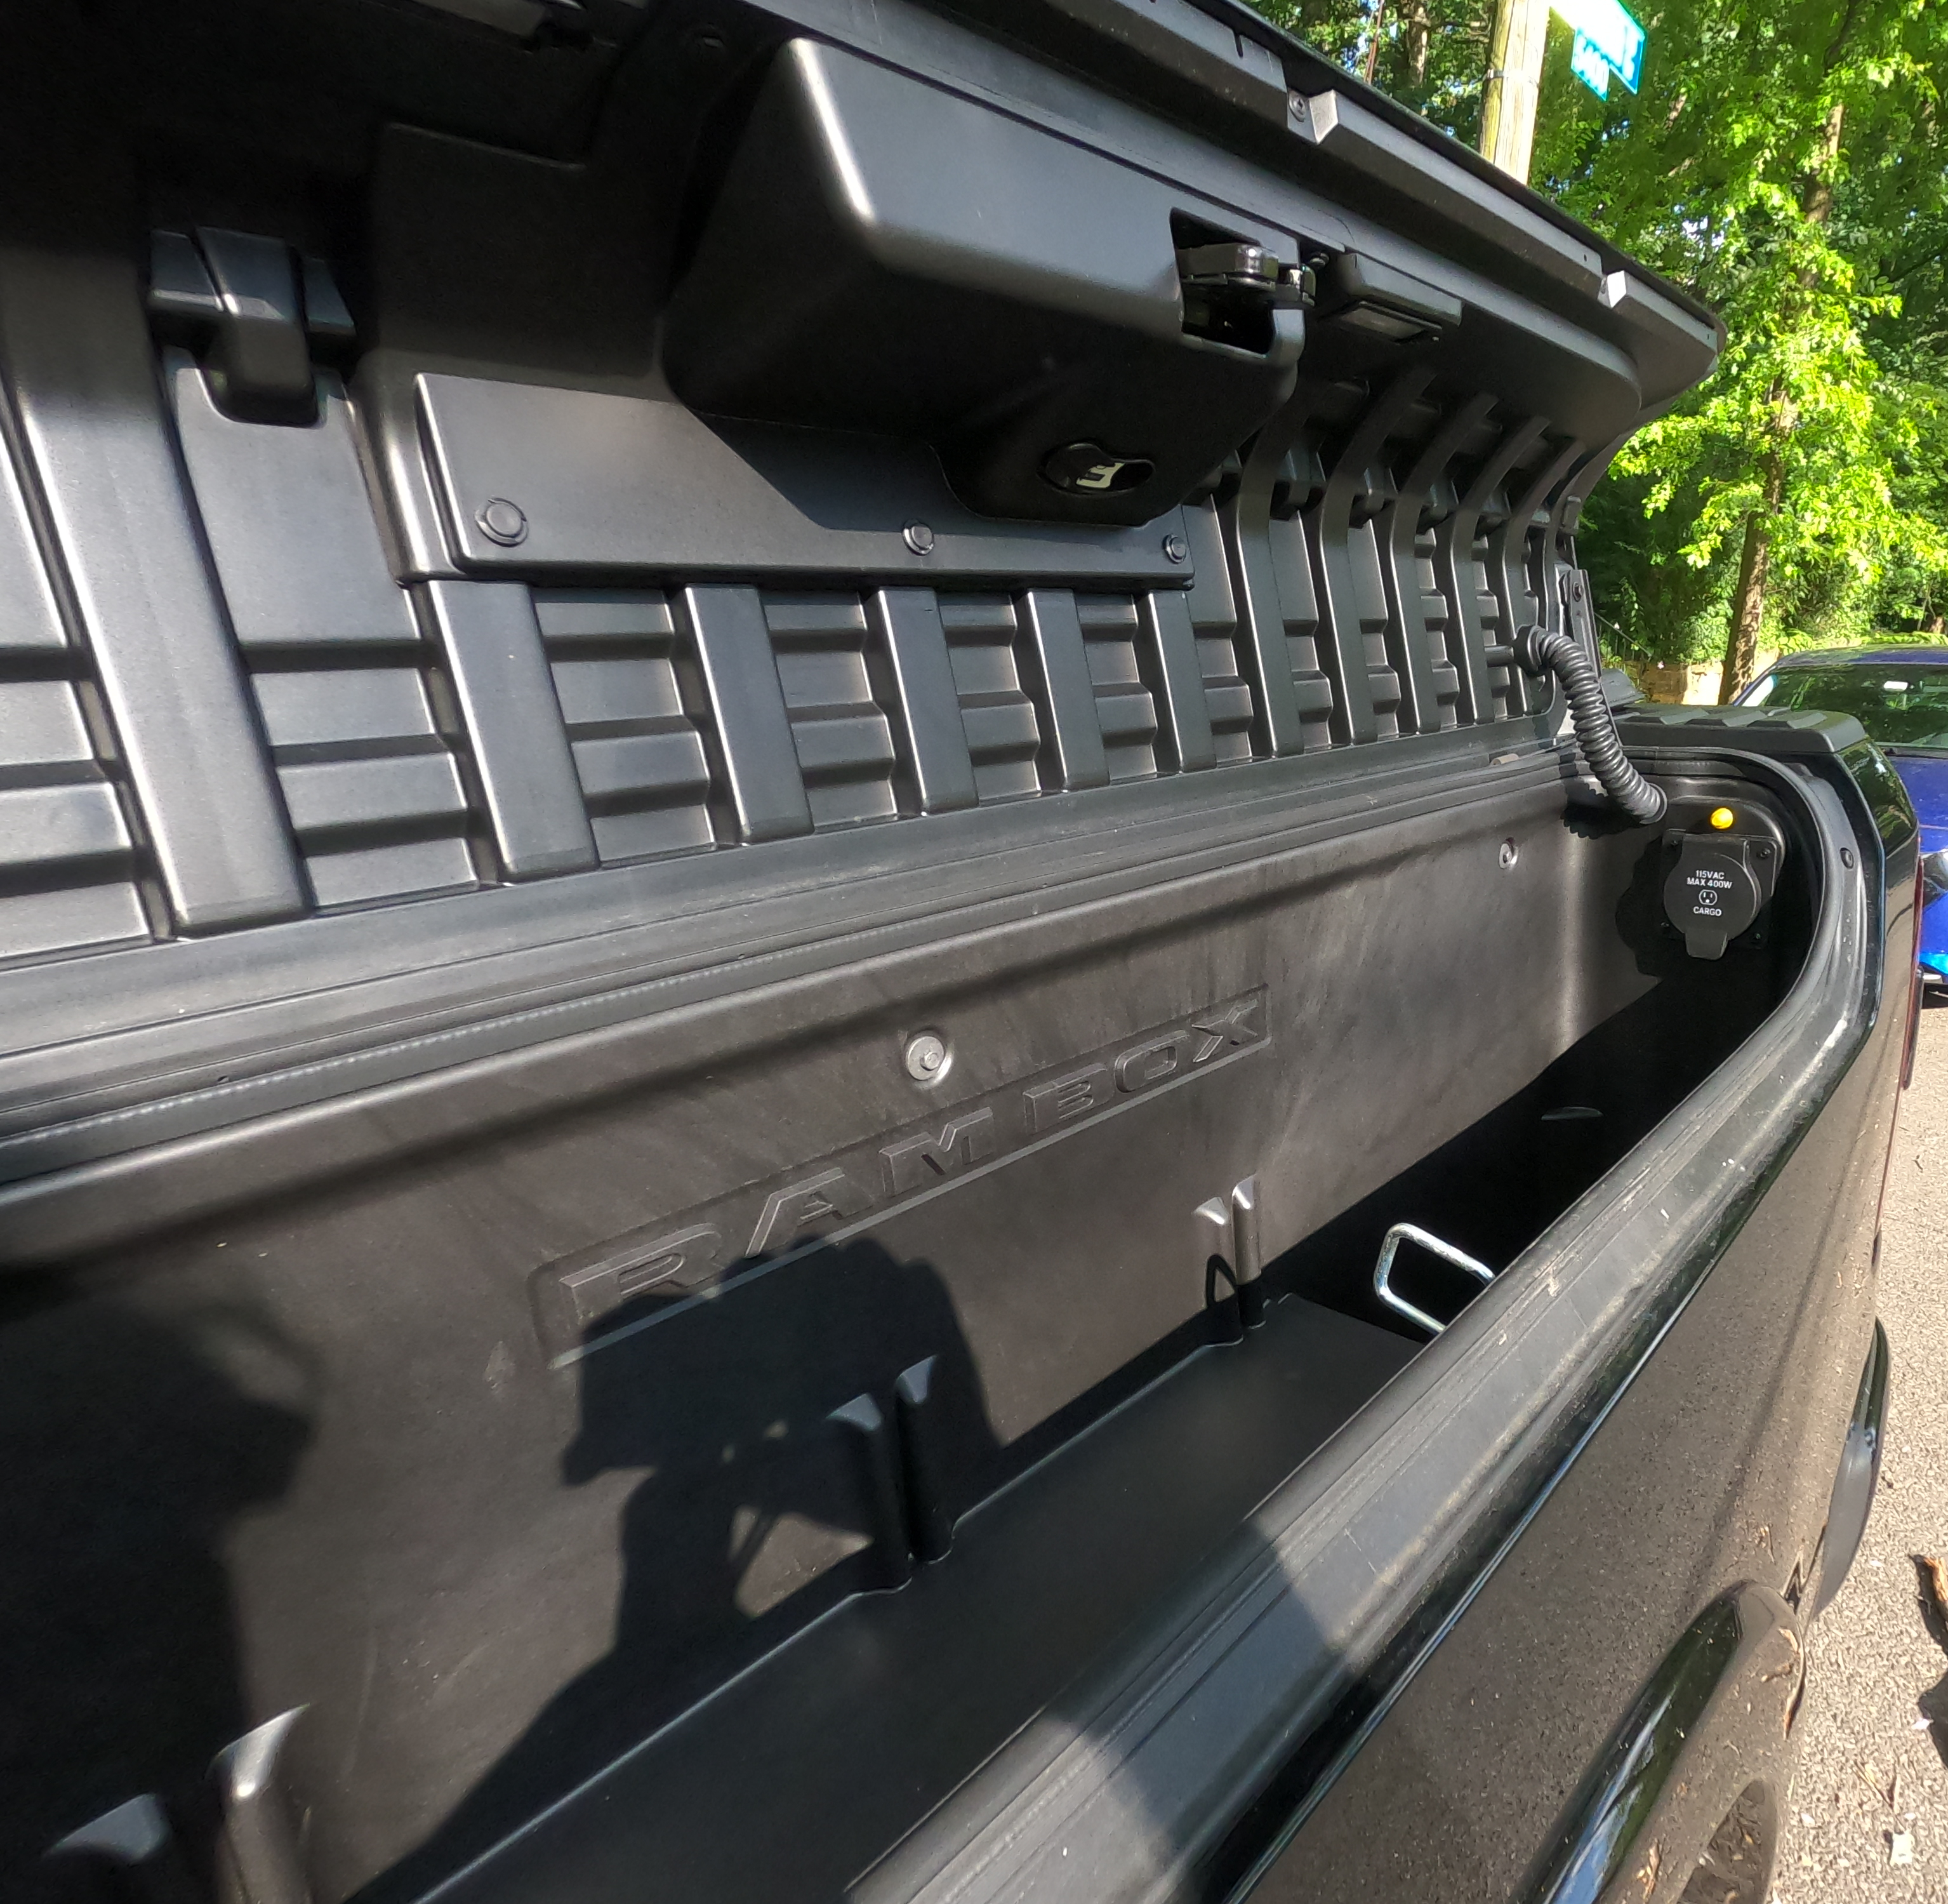 Ram 1500 Ram Box with power outlet